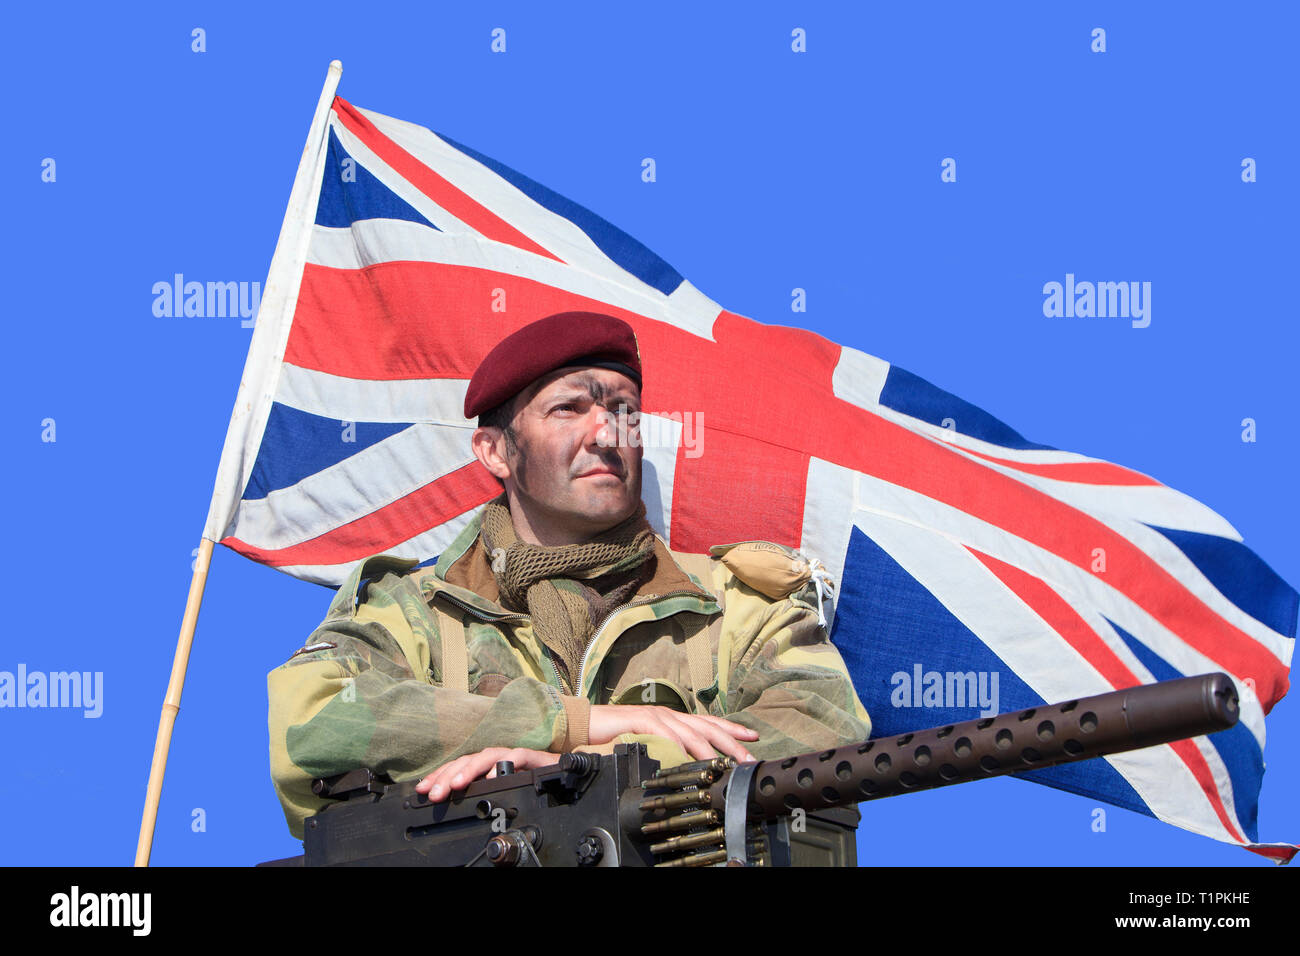 A soldier of the 1st Airborne Division of the British Parachute Regiment with a Browning .30 Calibre during D-Day celebrations in Normandy, France - Stock Image